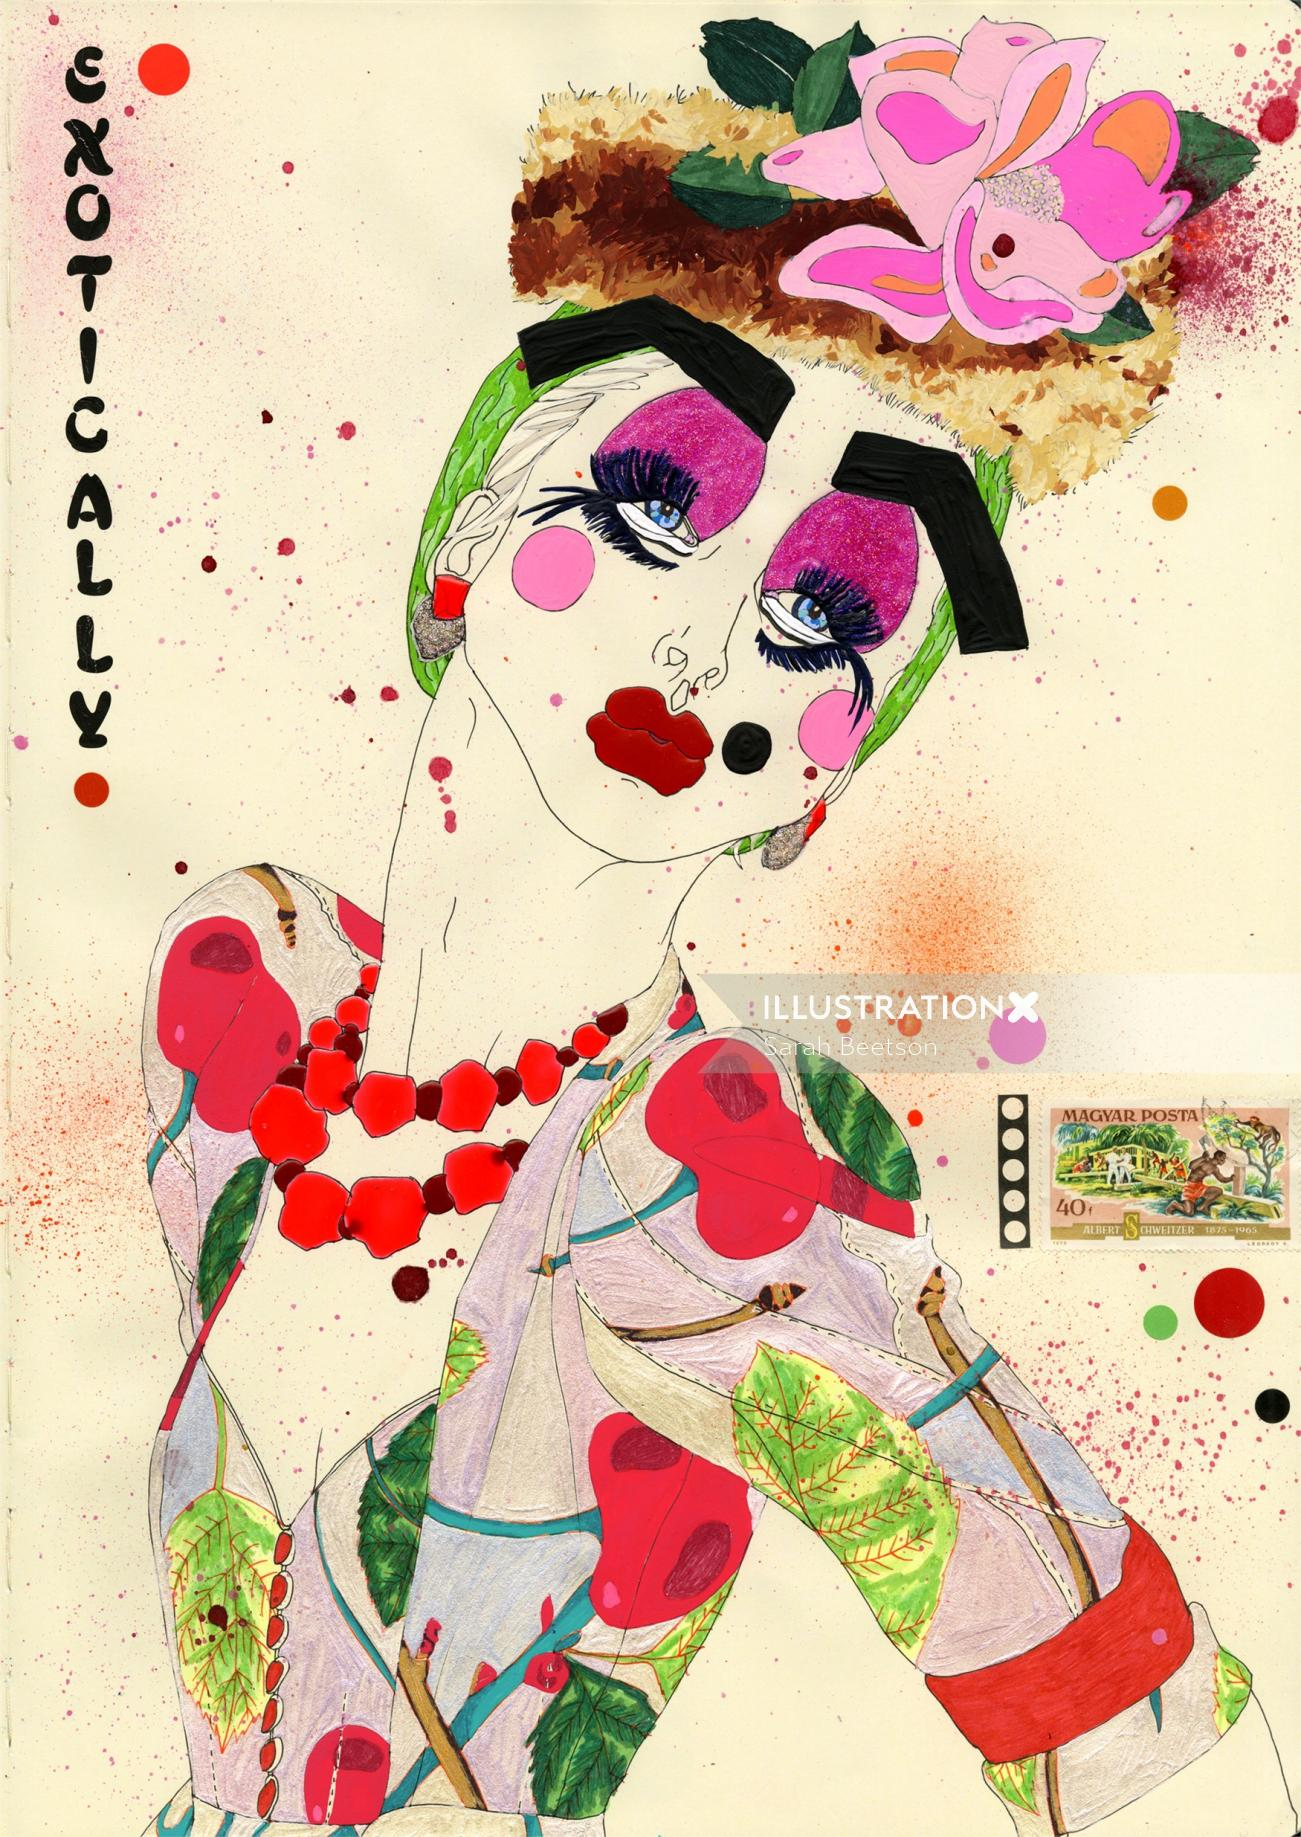 Exotically John Galliano illustration by Sarah Beetson